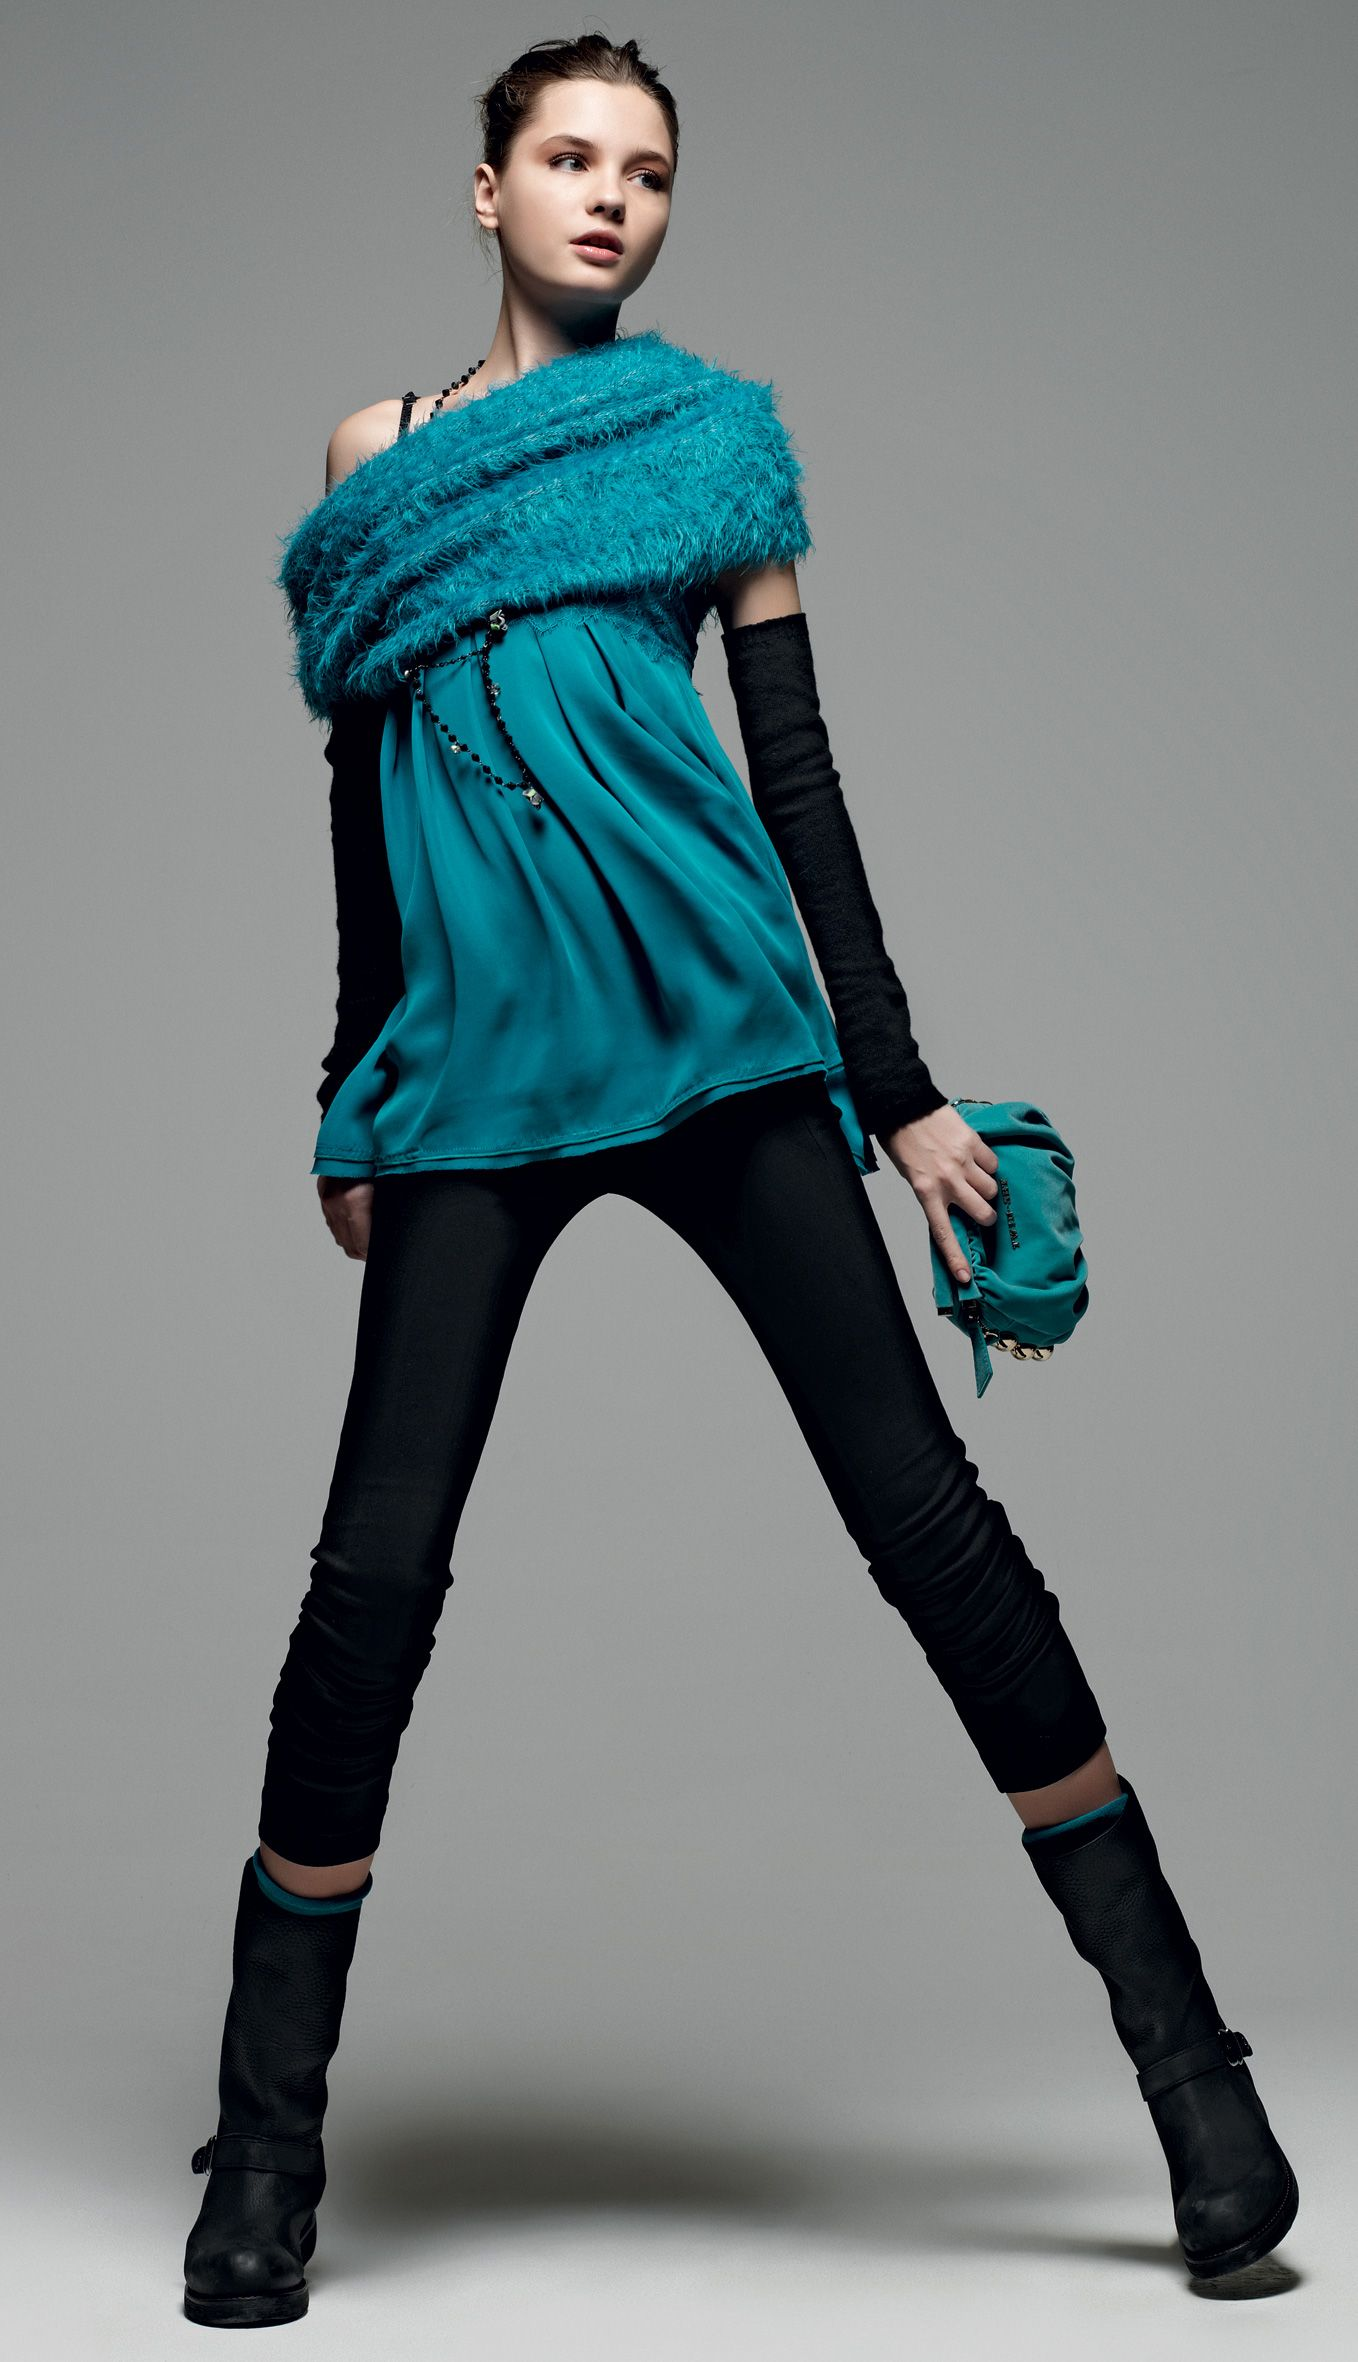 Twin Set Simona Barbieri Shocking Atmospheres Collar Top Blue Gloves Black Skinny Trousers Clutch Bag With Chain Handle And Biker Boot Strap